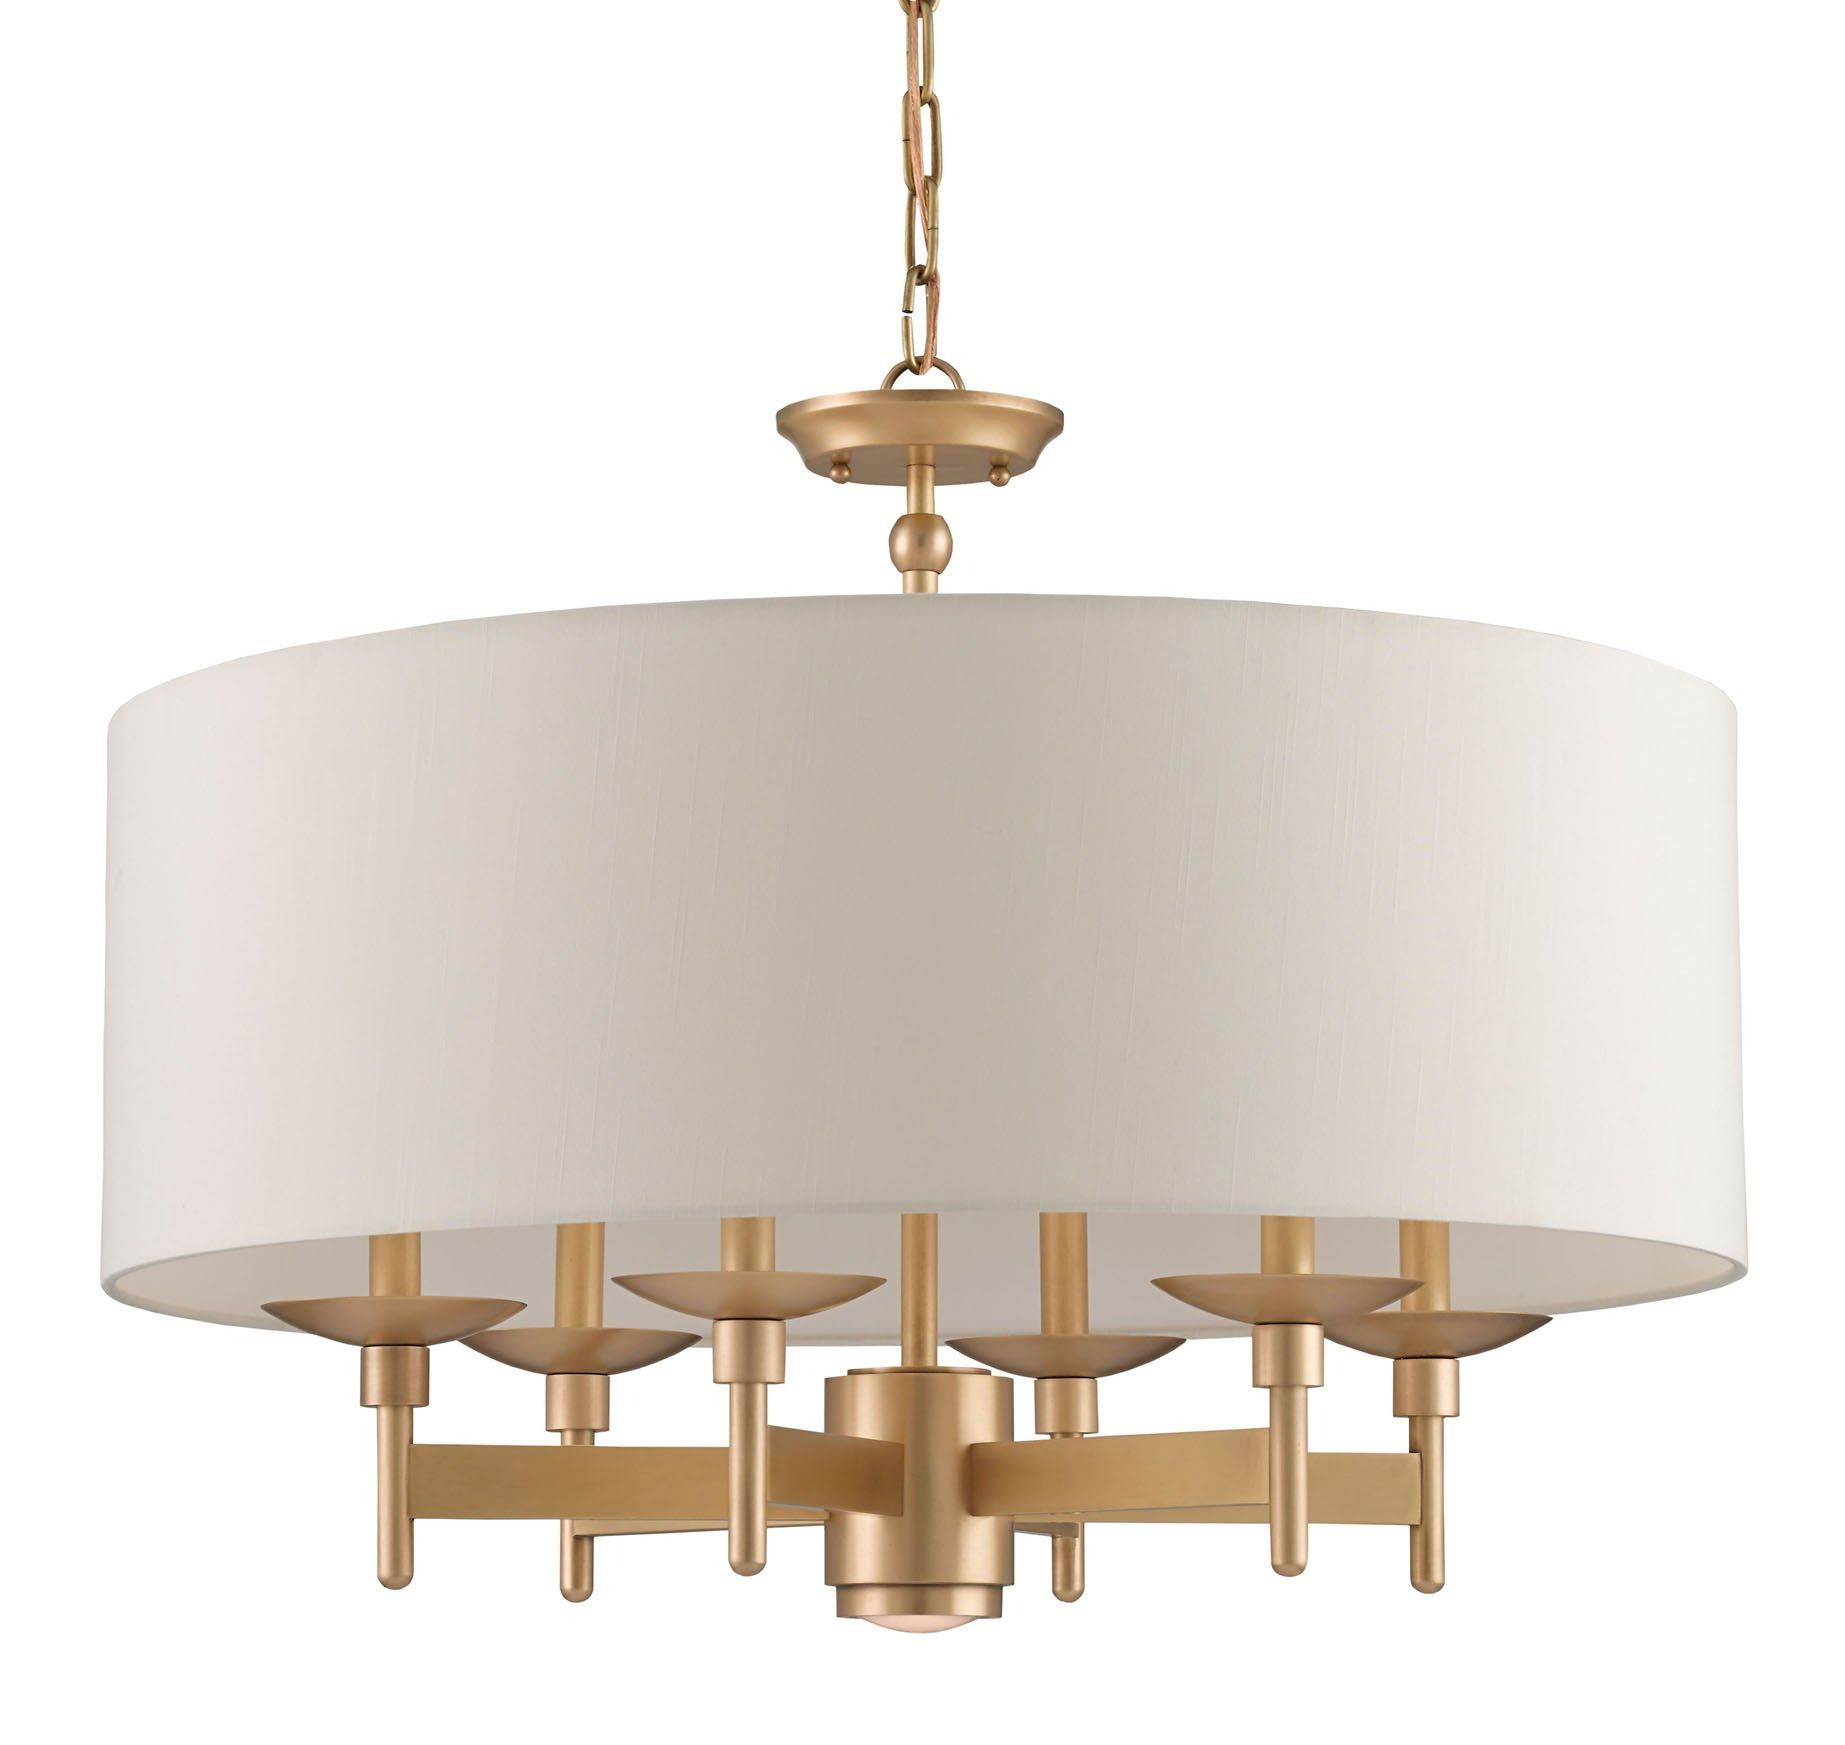 Currey And Company Bering Brass Chandelier Brass Chandelier Antique Brass Chandelier Chandelier